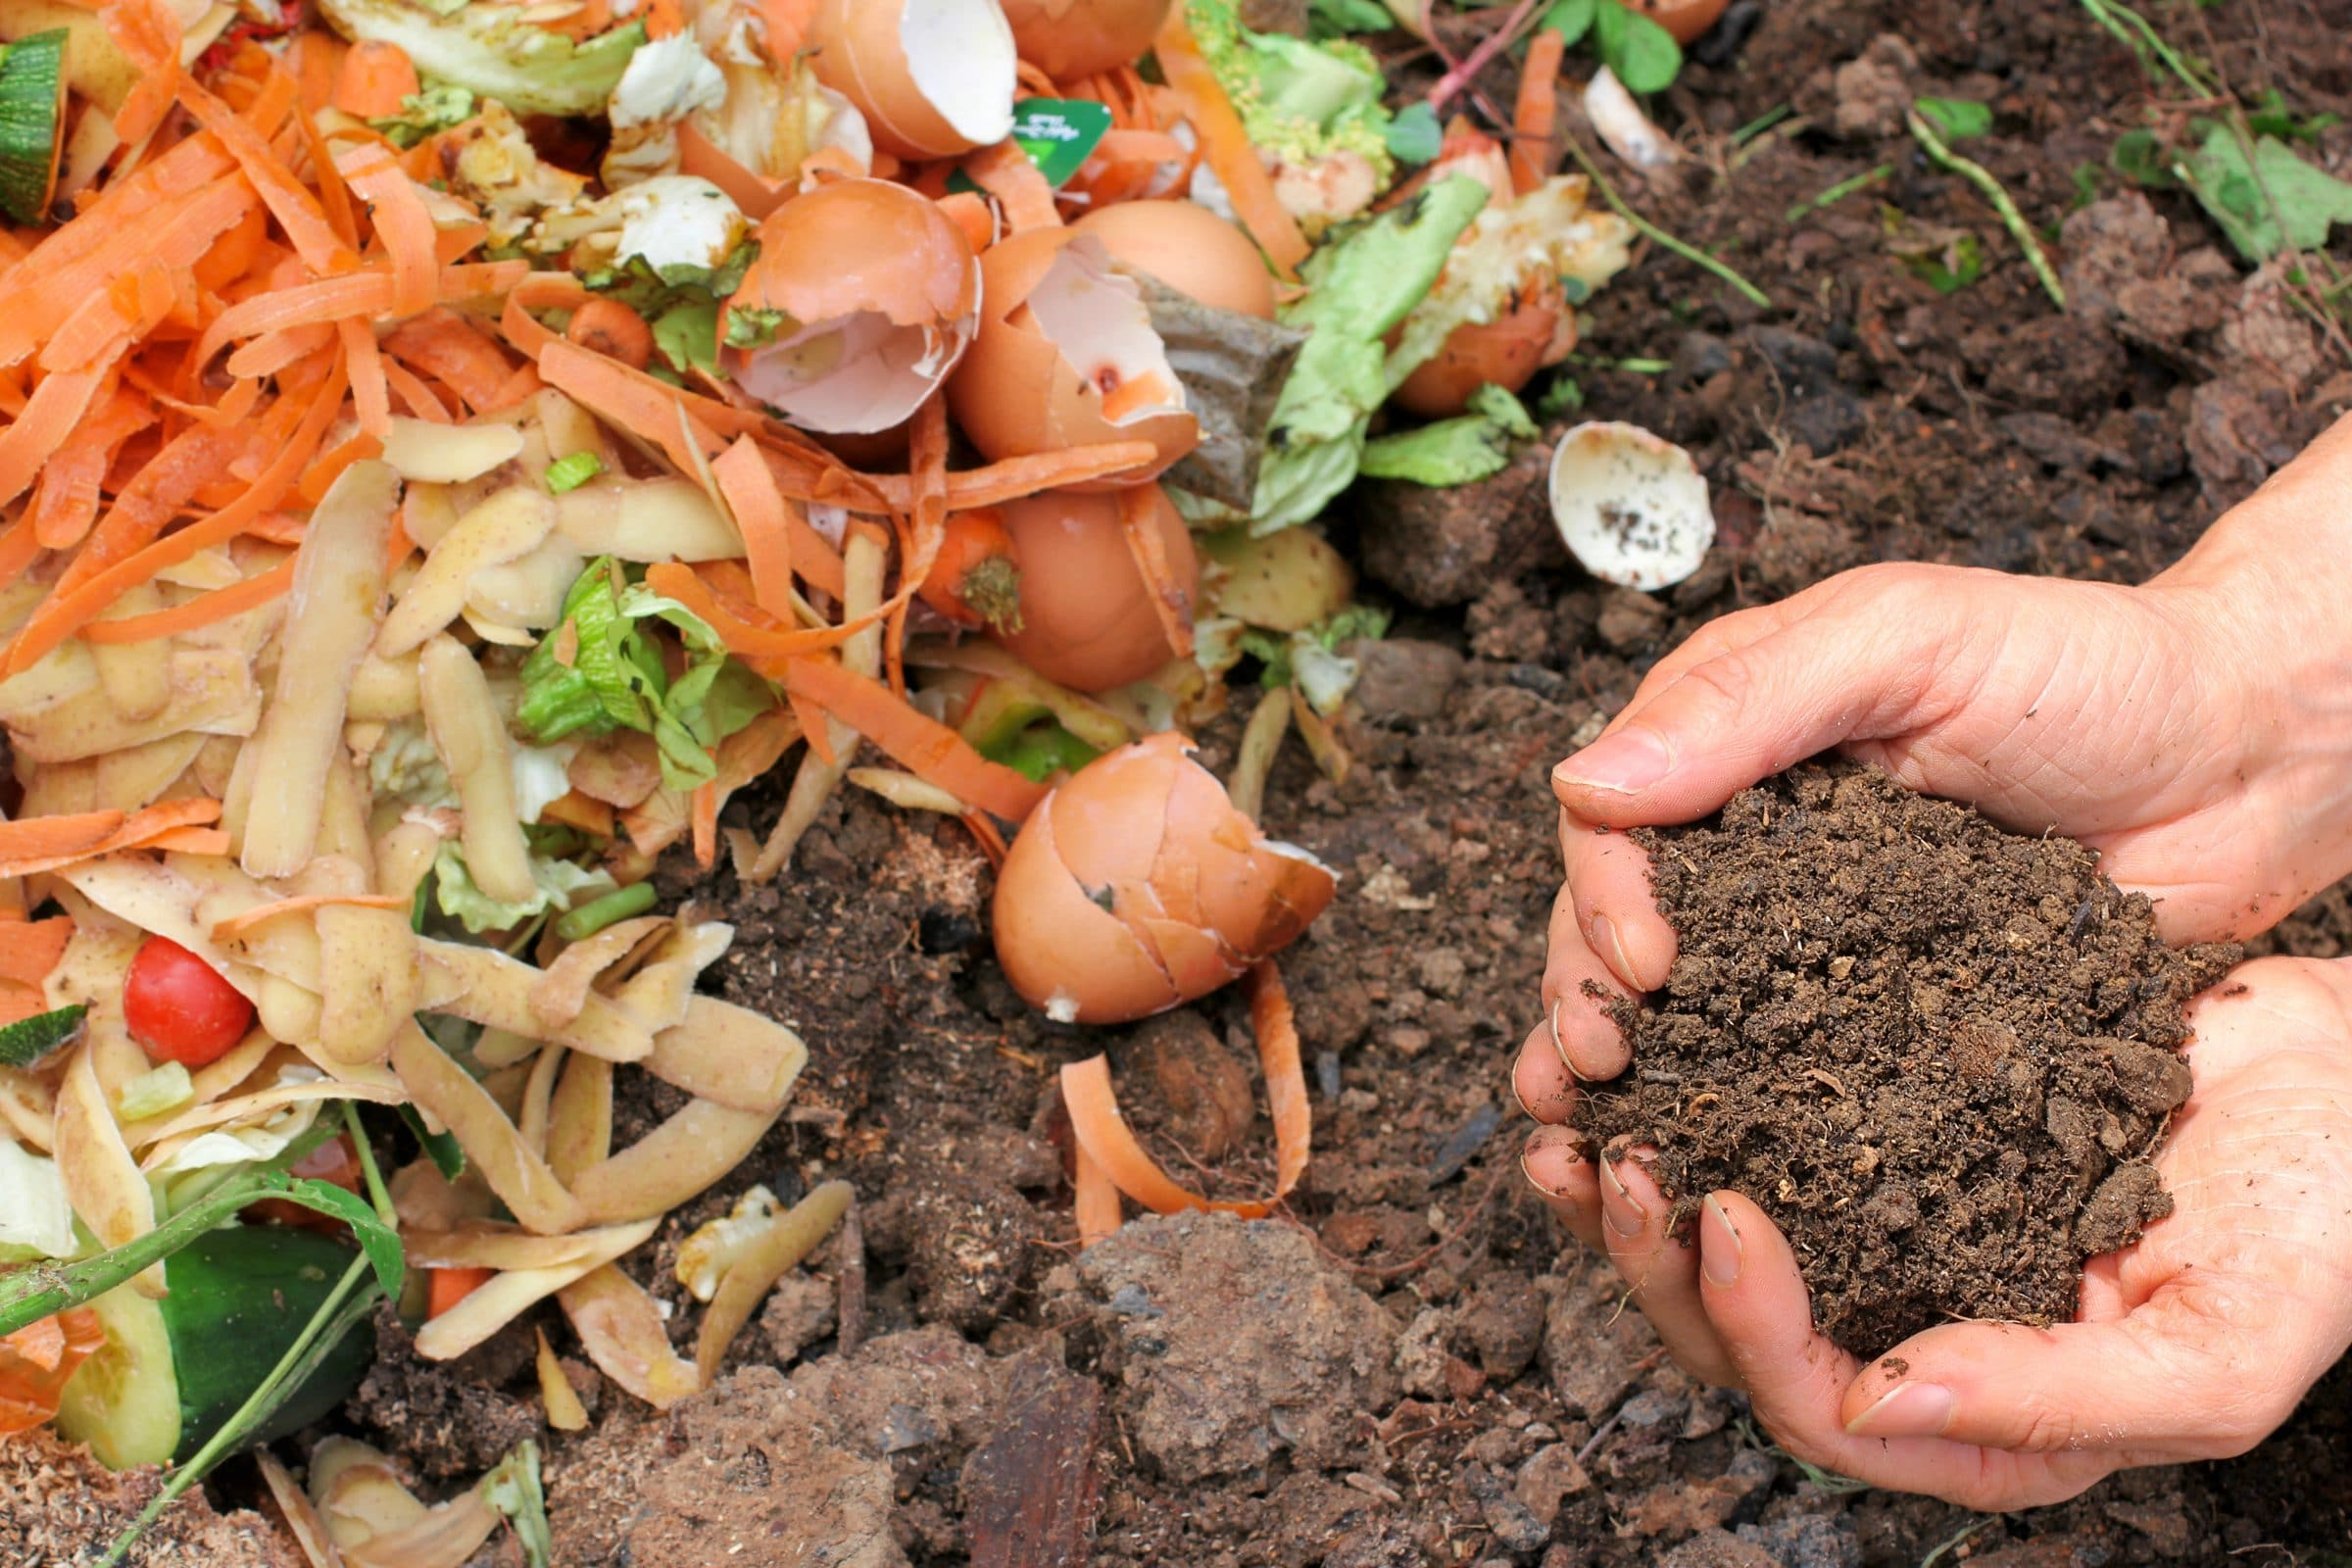 Food scraps are piled on top of dirt, a pair of hands holds the dirt in cupped hands.